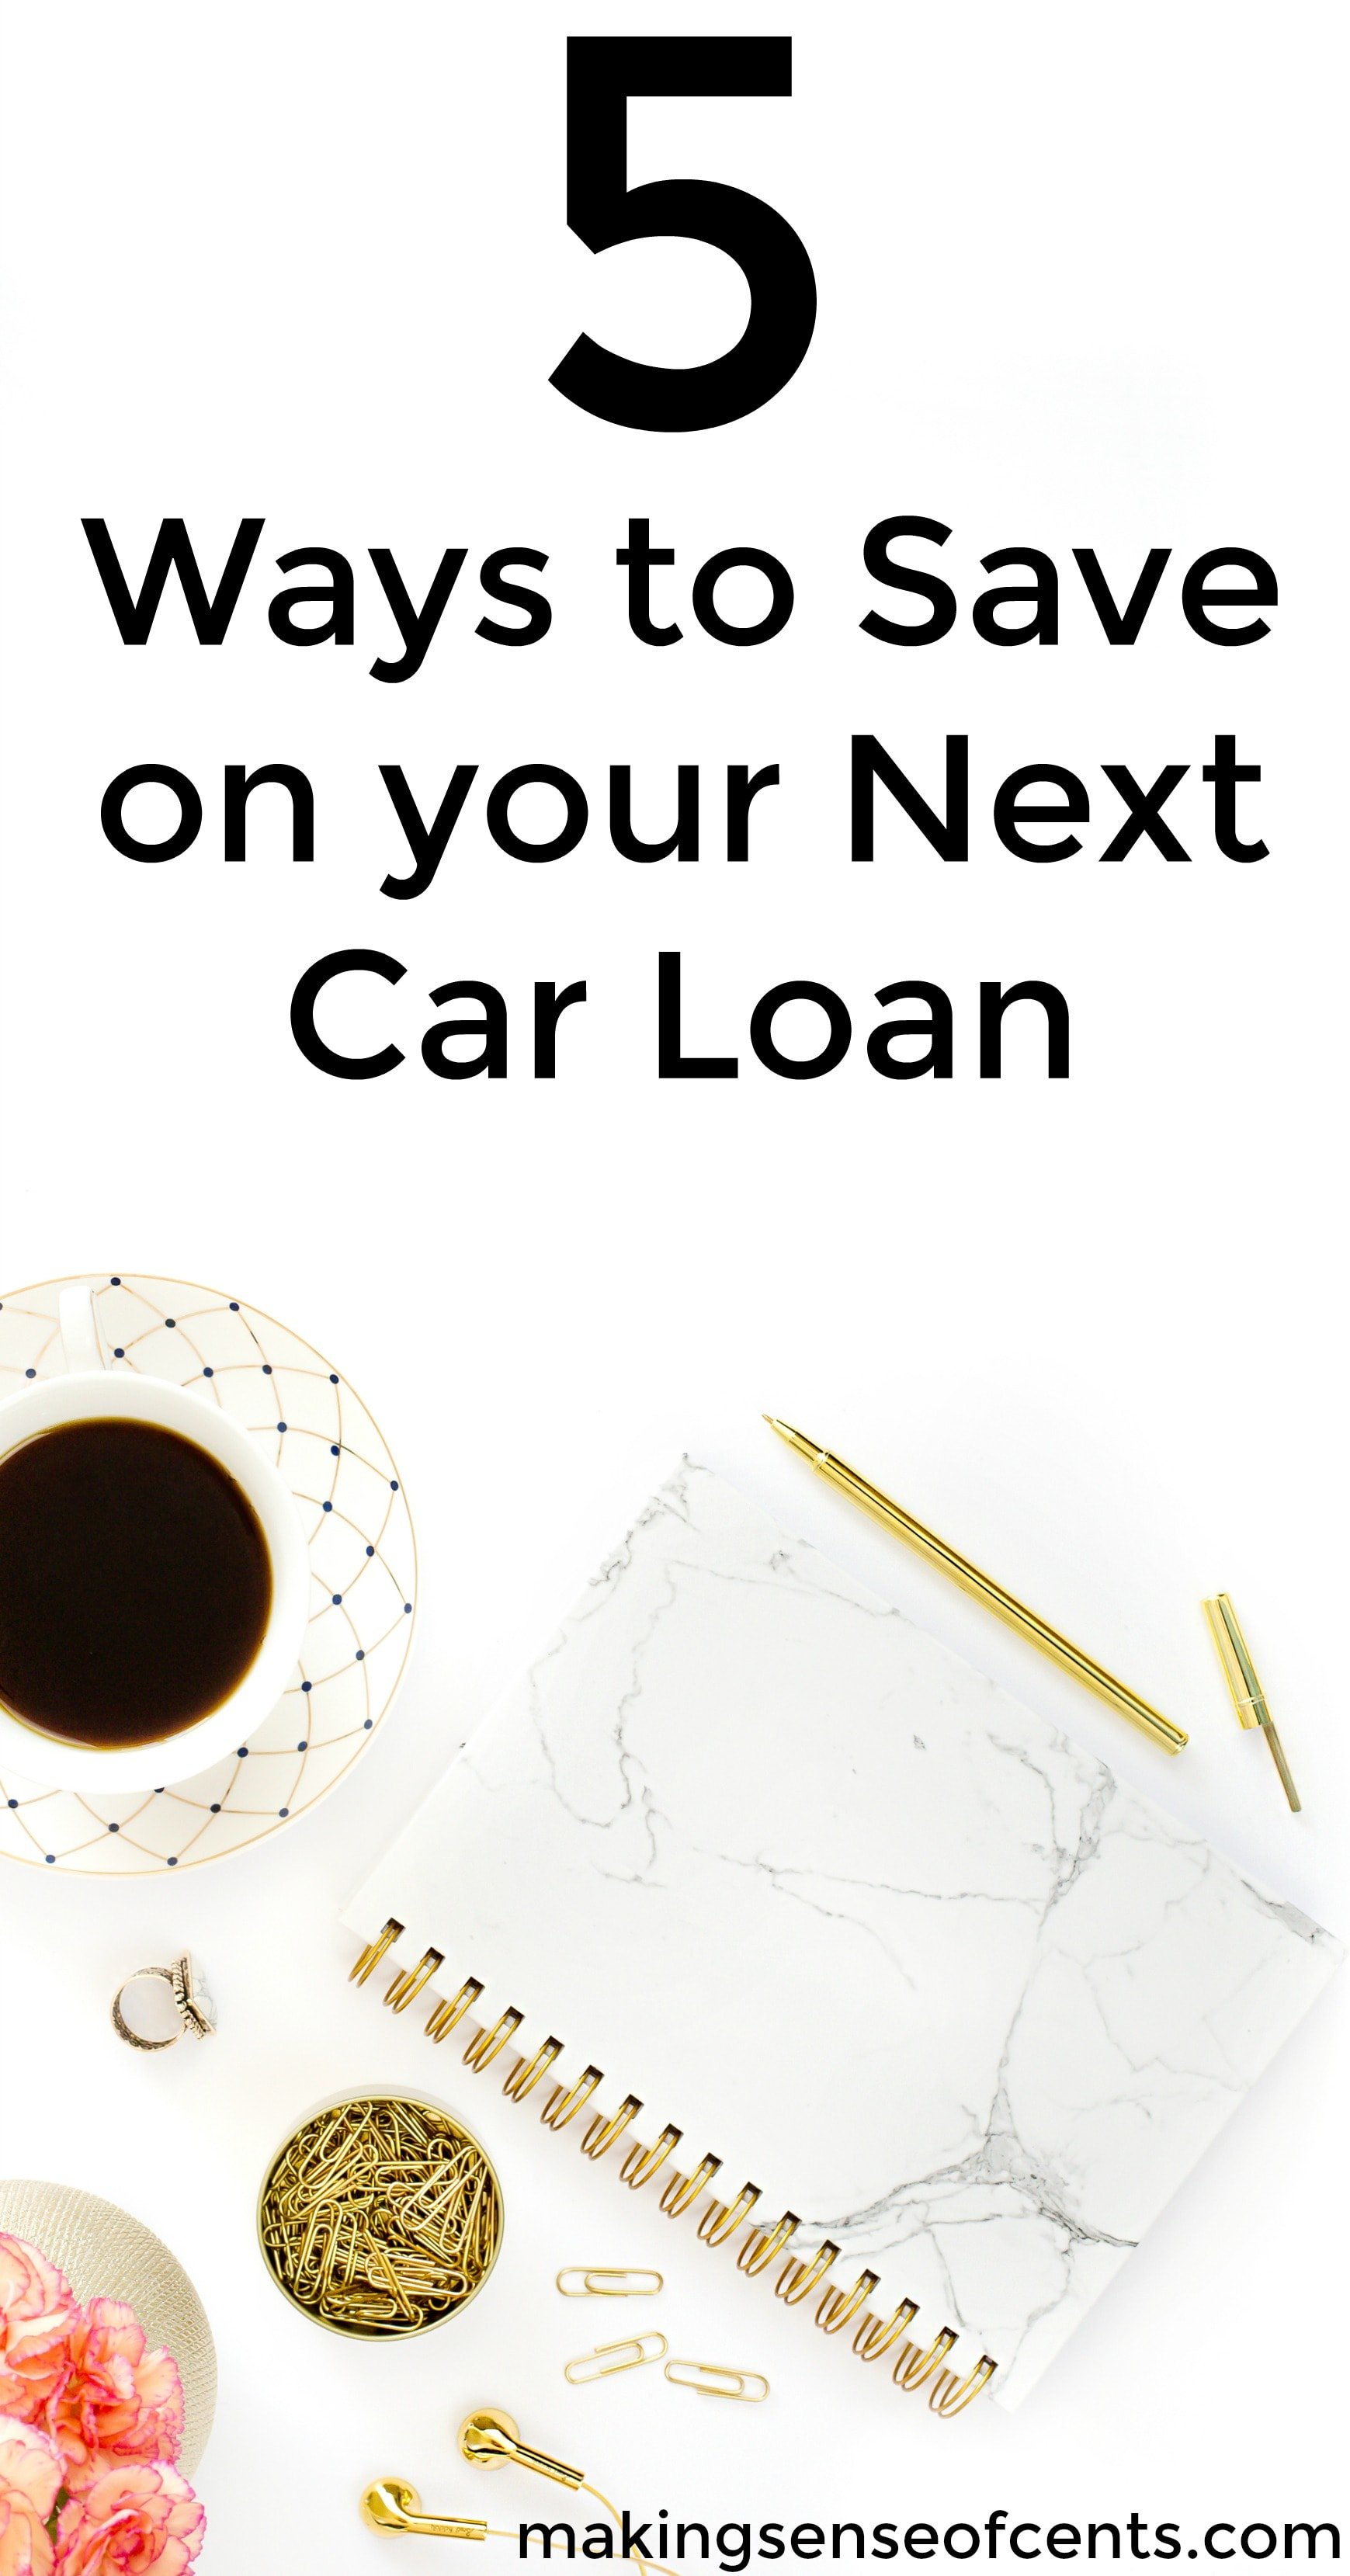 Check out this list of 5 ways to save on your next car loan.